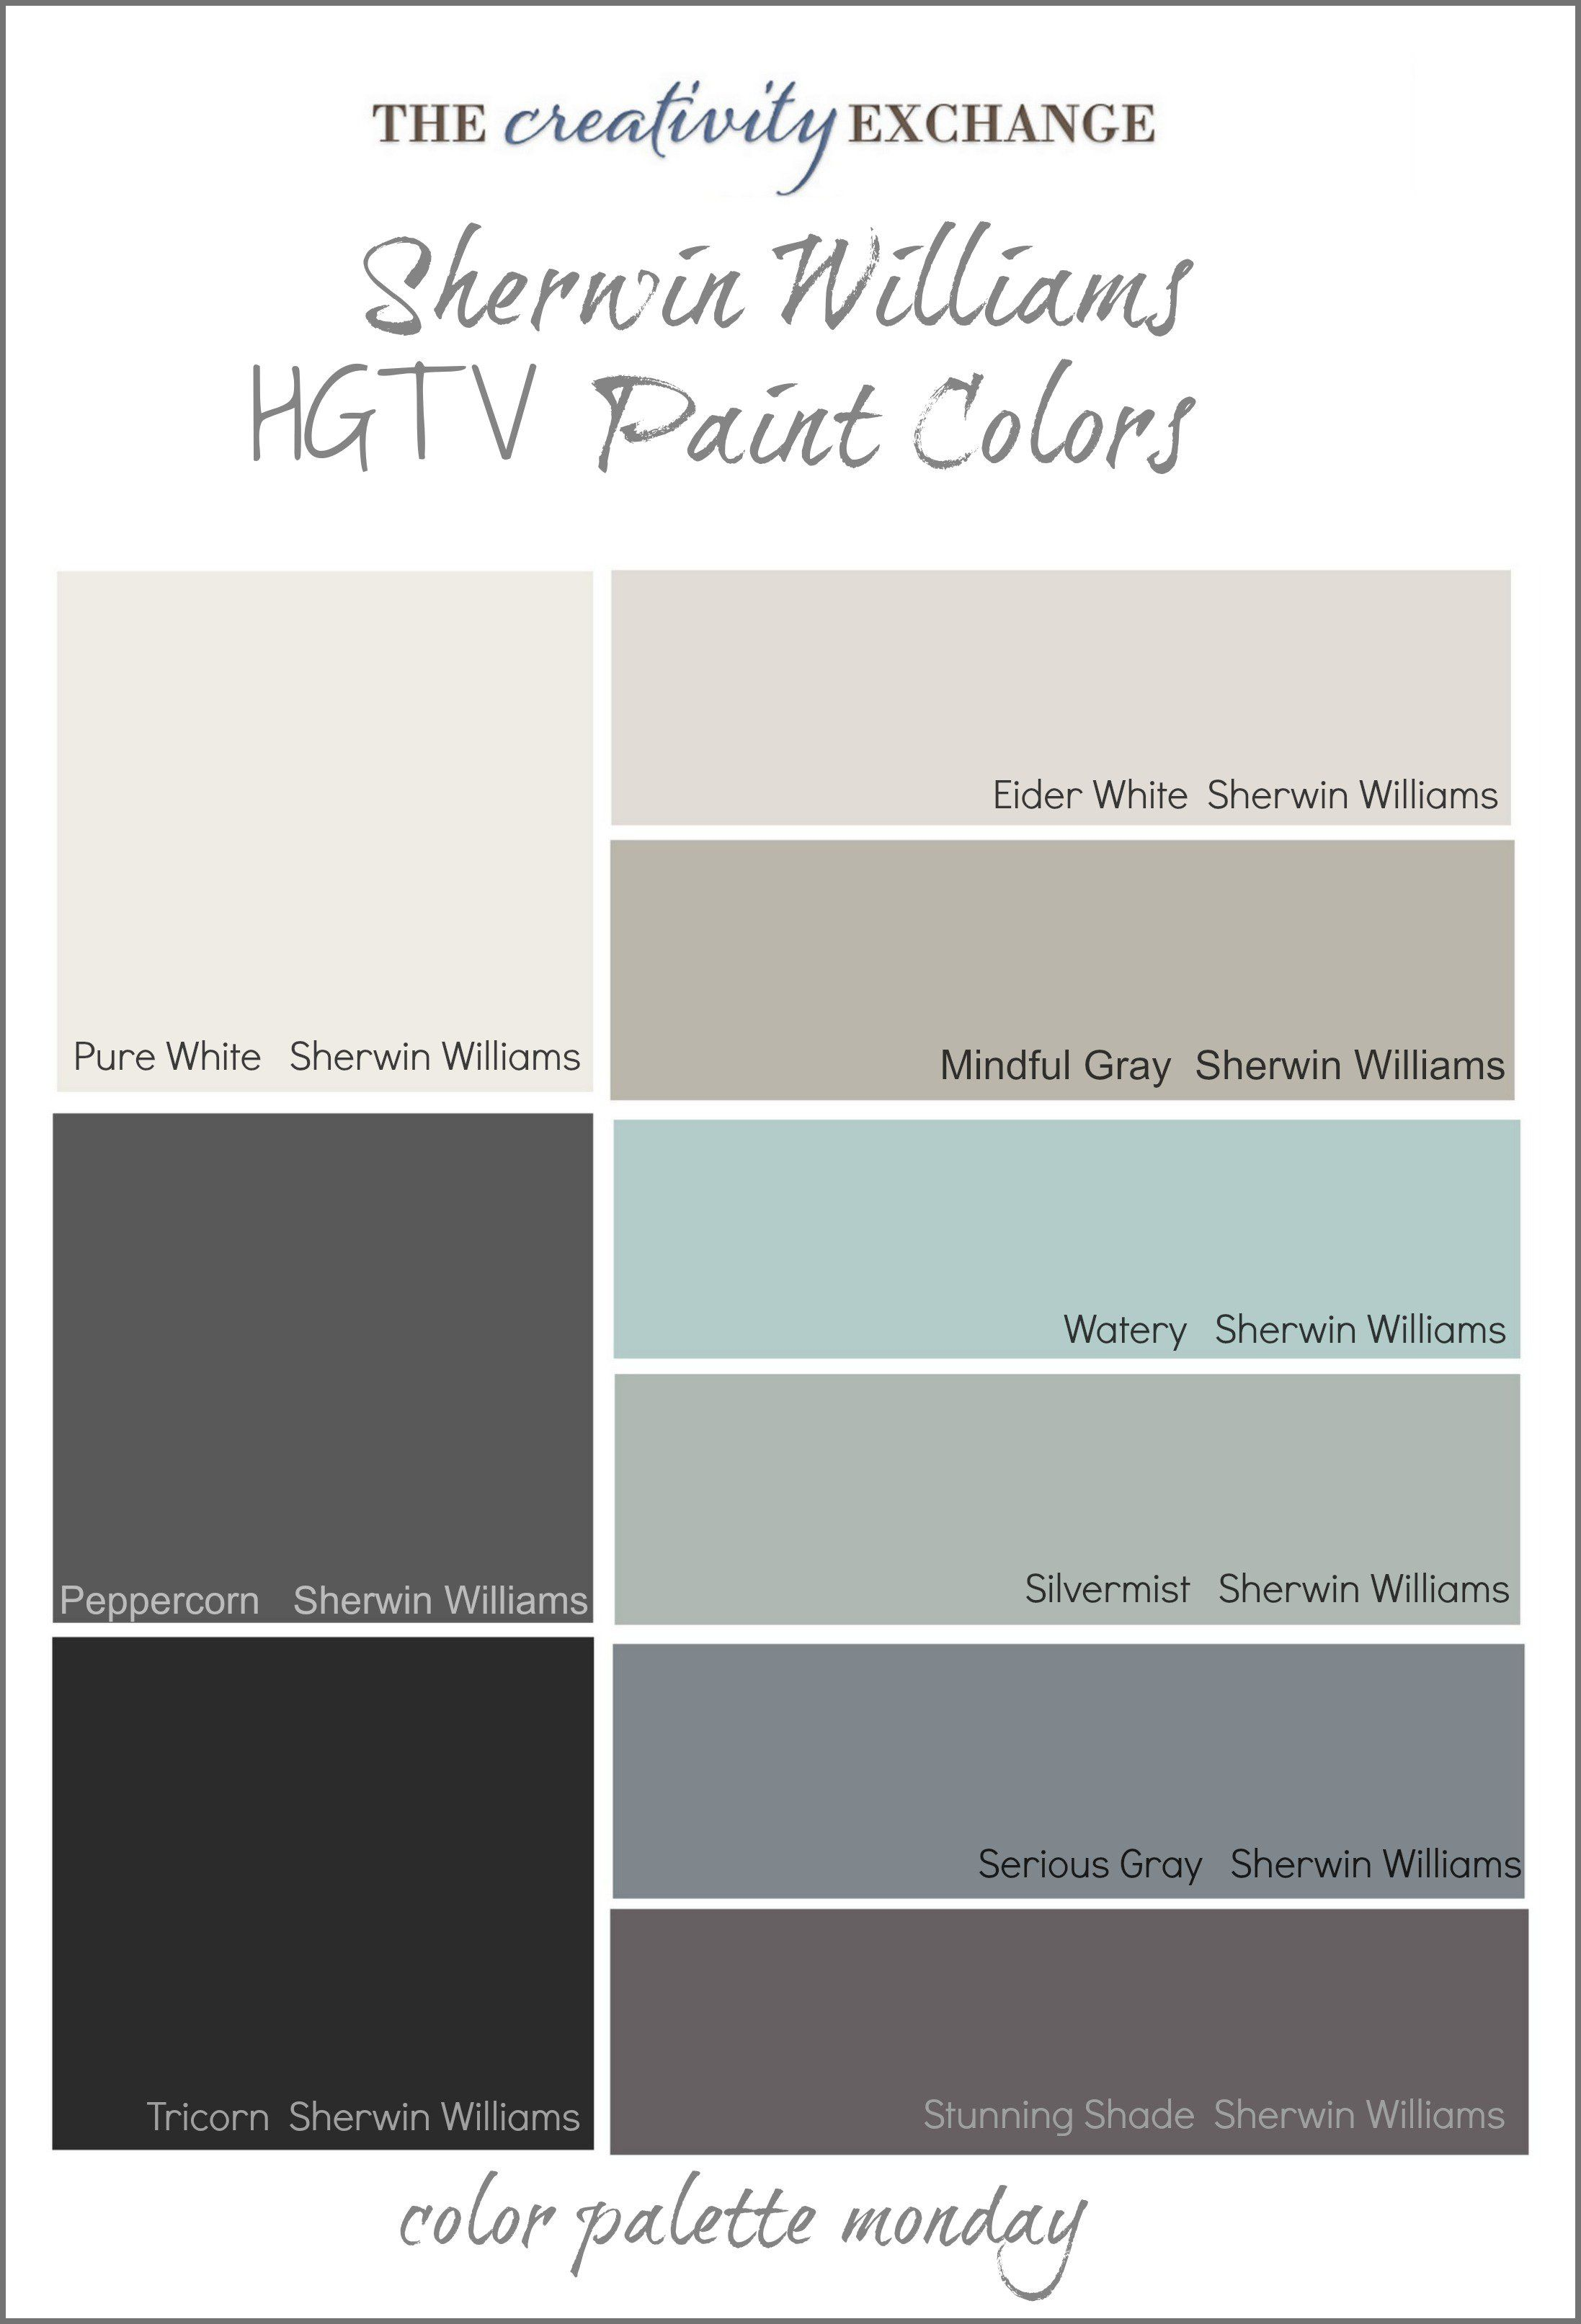 HGTV Paint Colors from Sherwin Williams | Hgtv paint colors, Hgtv ...